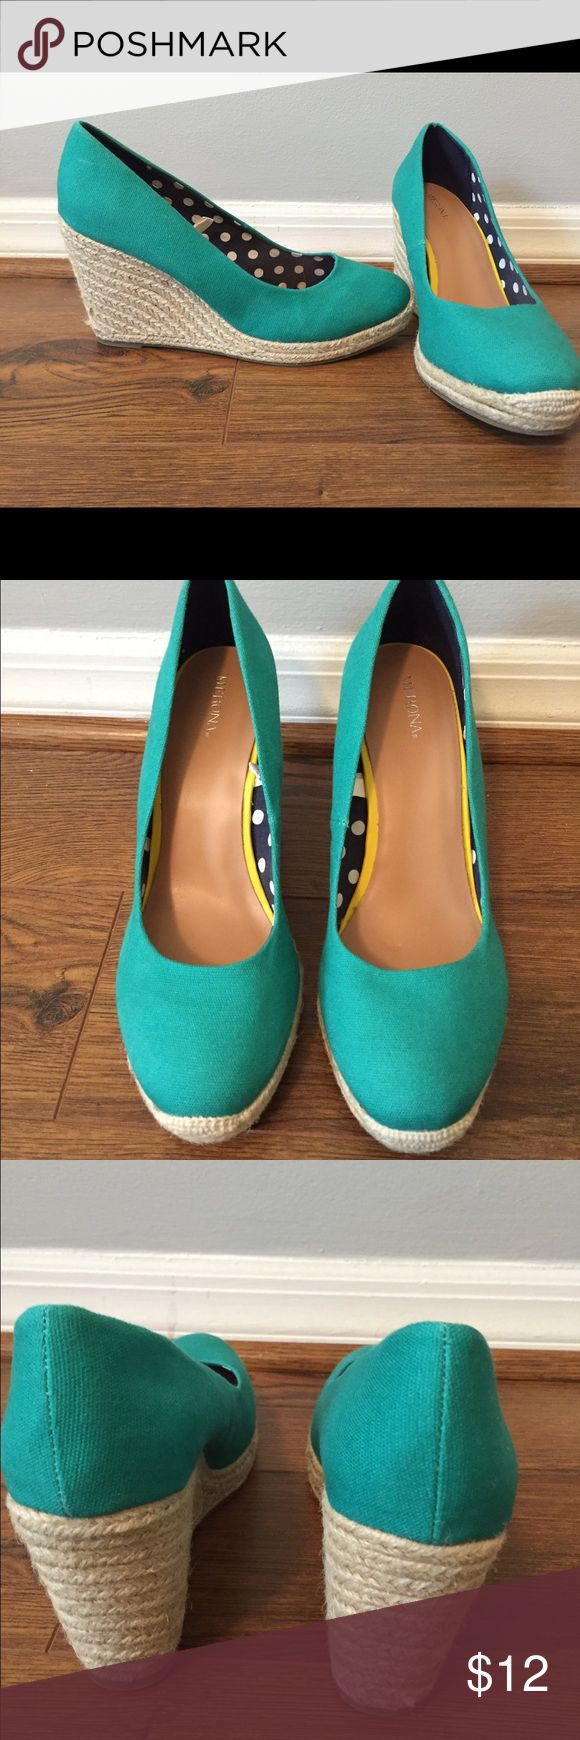 Teal Wedge Fun and bright teal wedge perfect for spring and summer.  Adds a great pop of color to any outfit!  Small mark on one of the wedges (as shown in picture). Merona Shoes Wedges